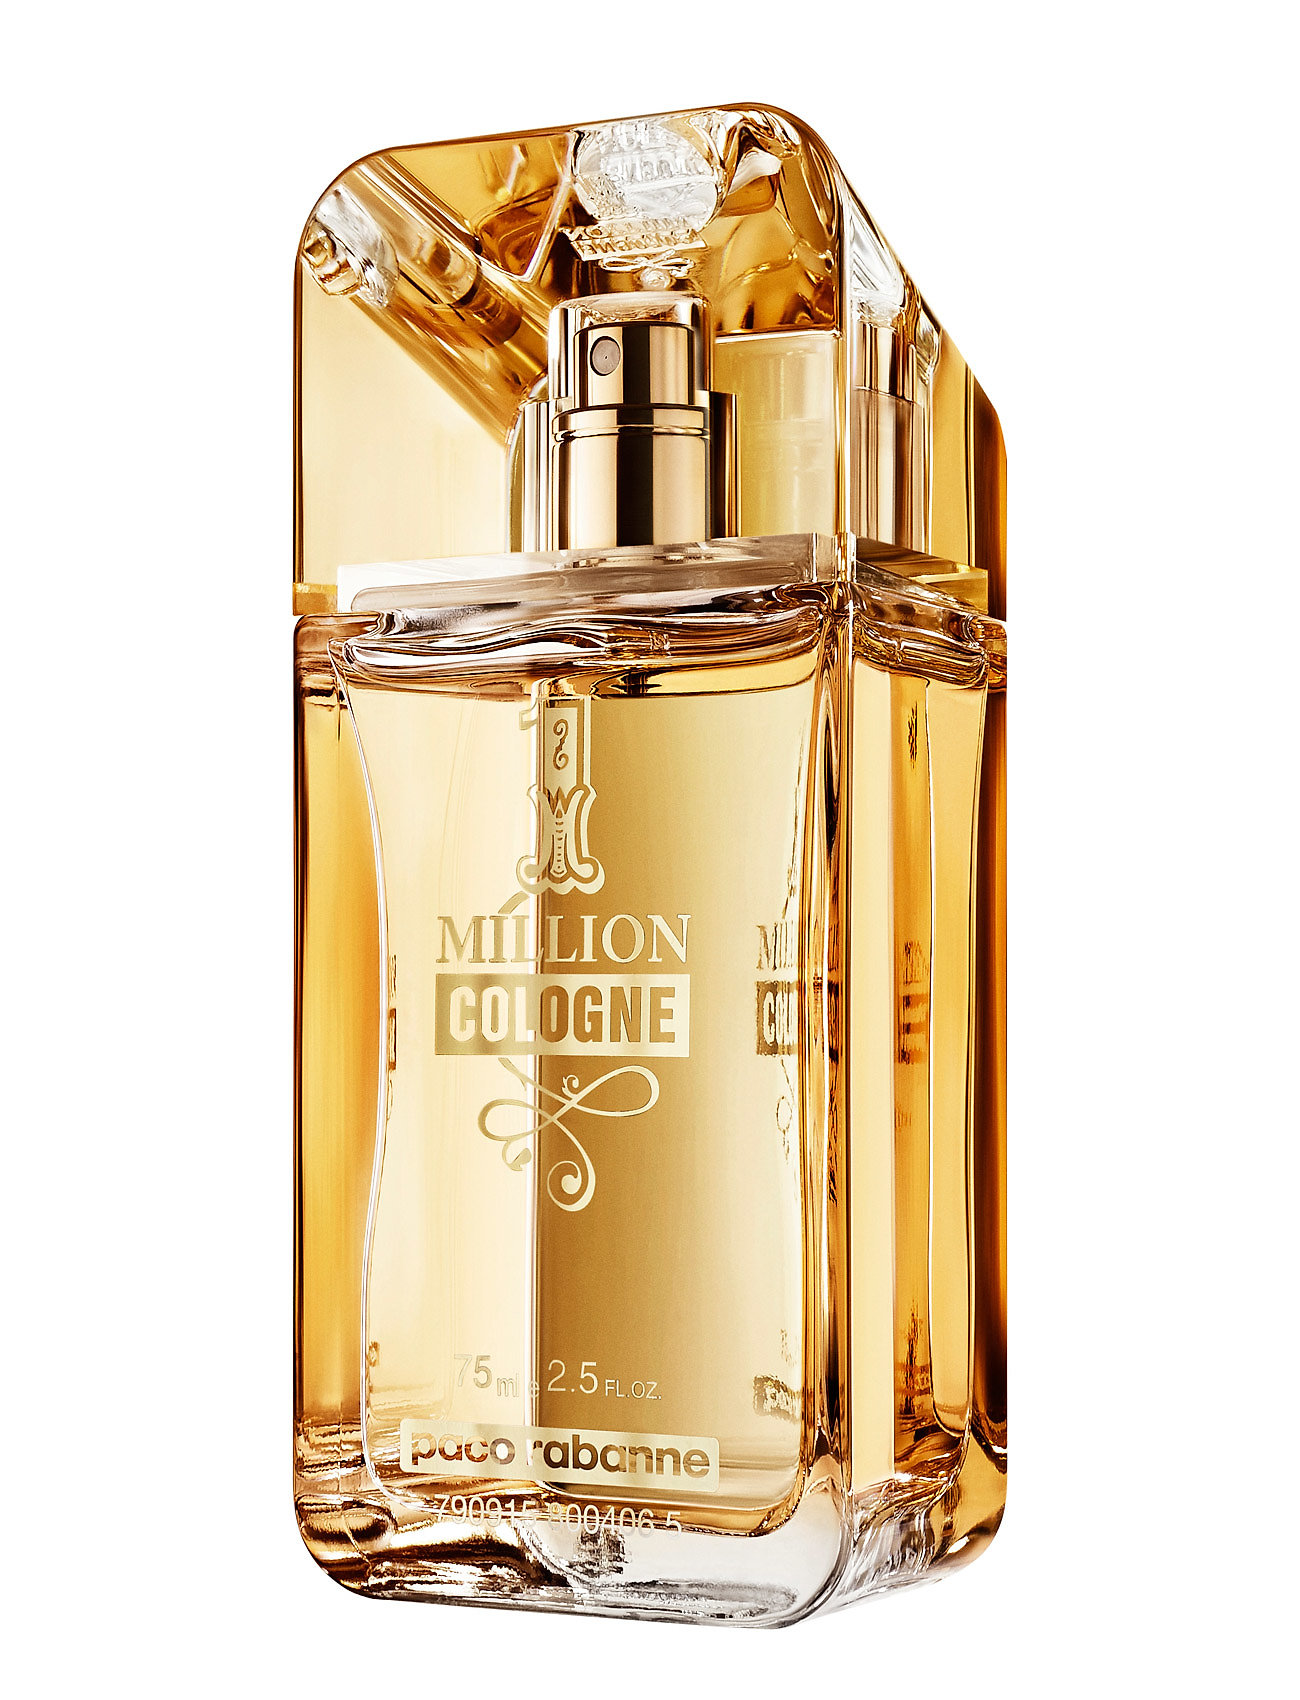 paco rabanne Paco rabanne one million cologne co fra boozt.com dk